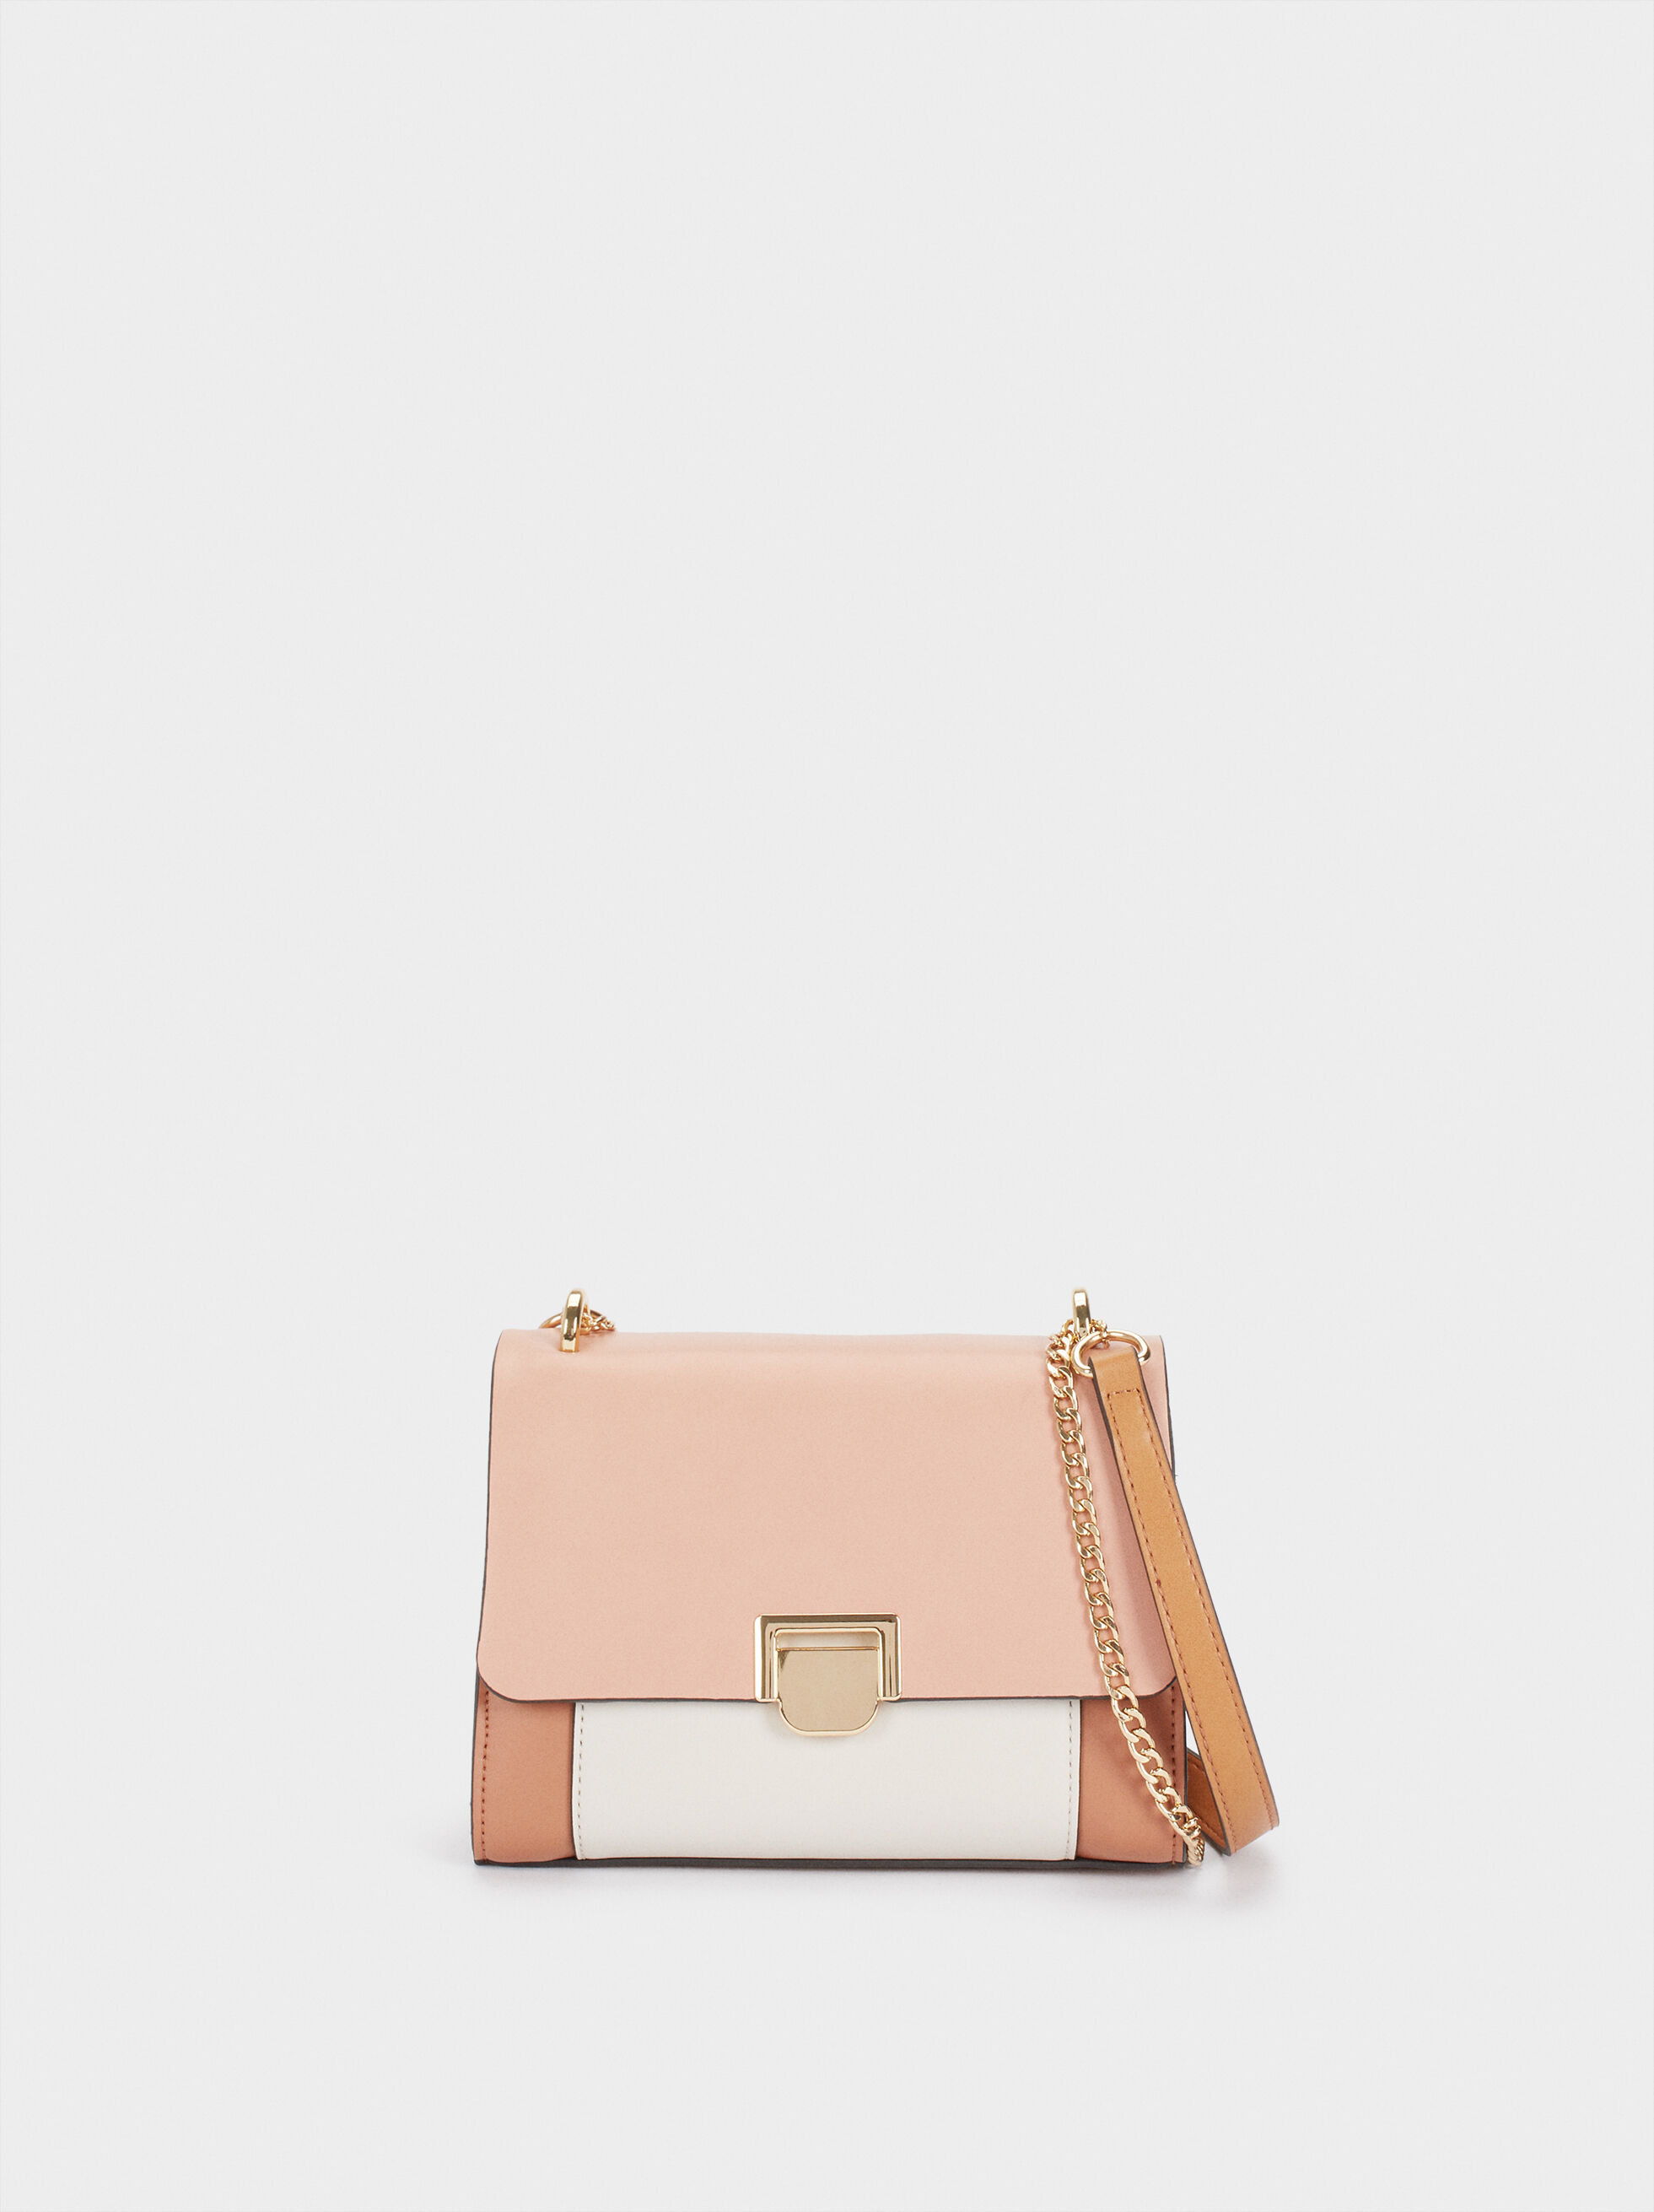 Crossbody Bag With Front Flap Fastening, Pink, hi-res